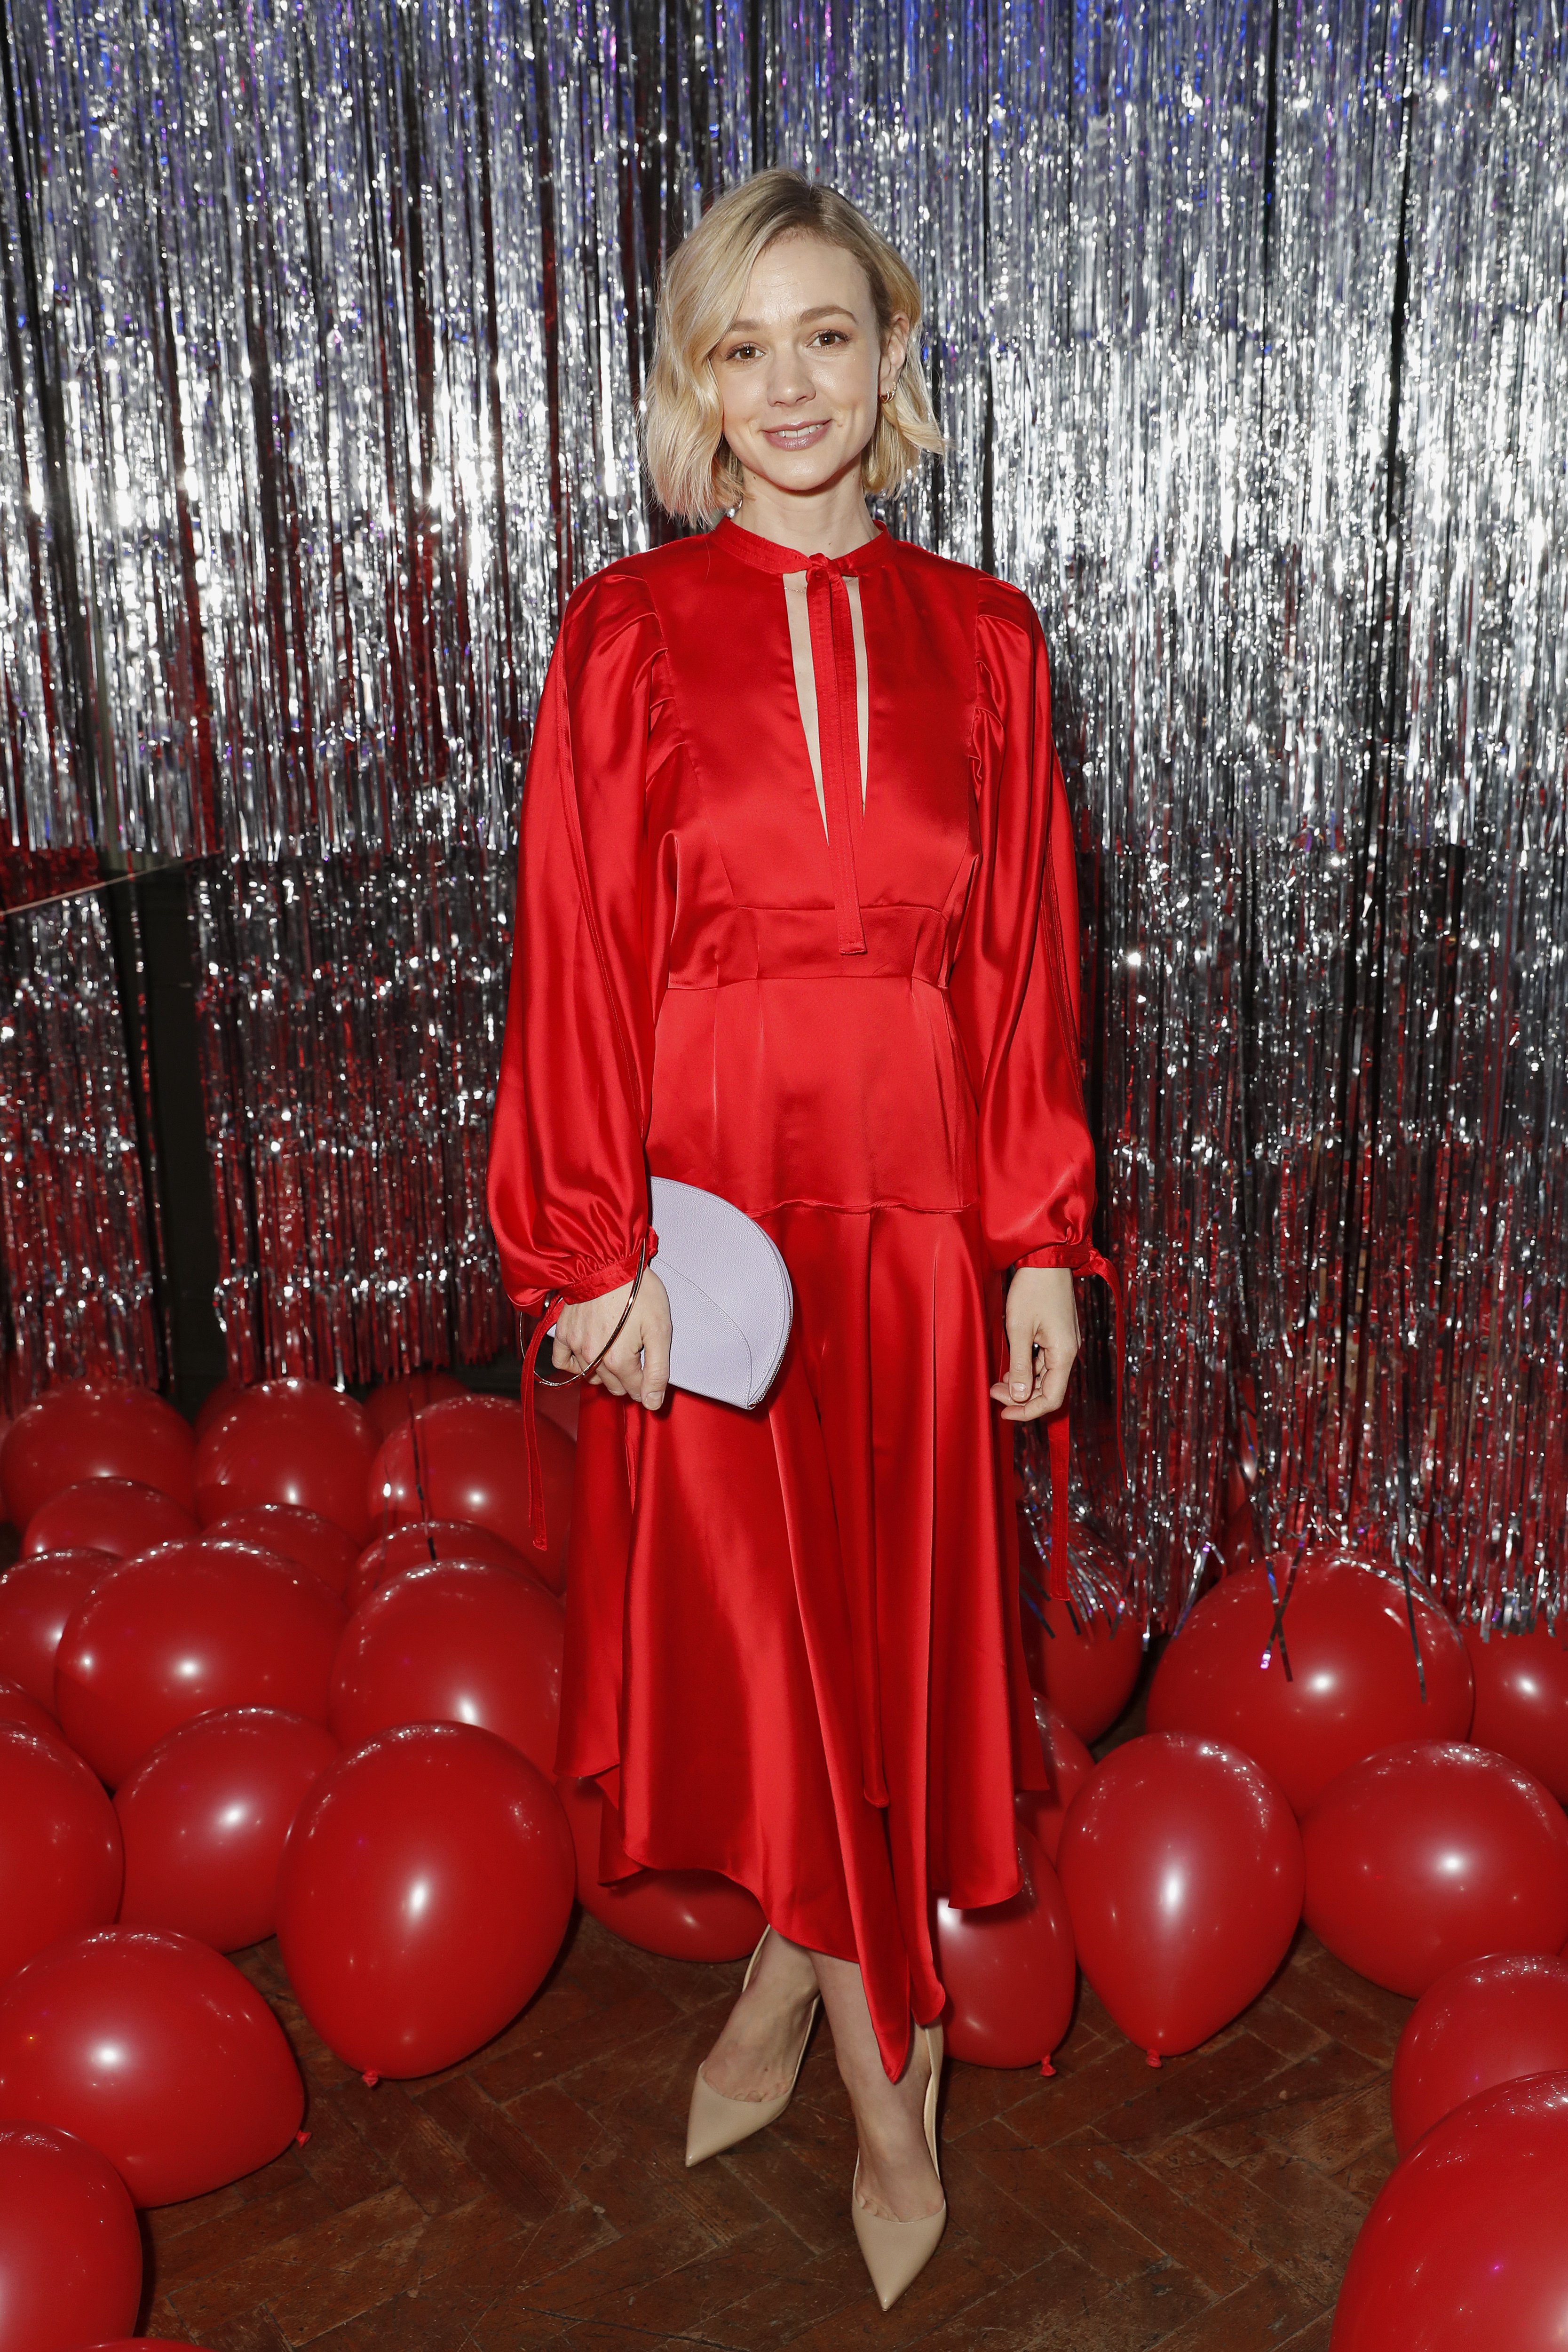 Carey Mulligan attends the Self Portrait store opening after party at Central St Martins in London on March 22, 2018.